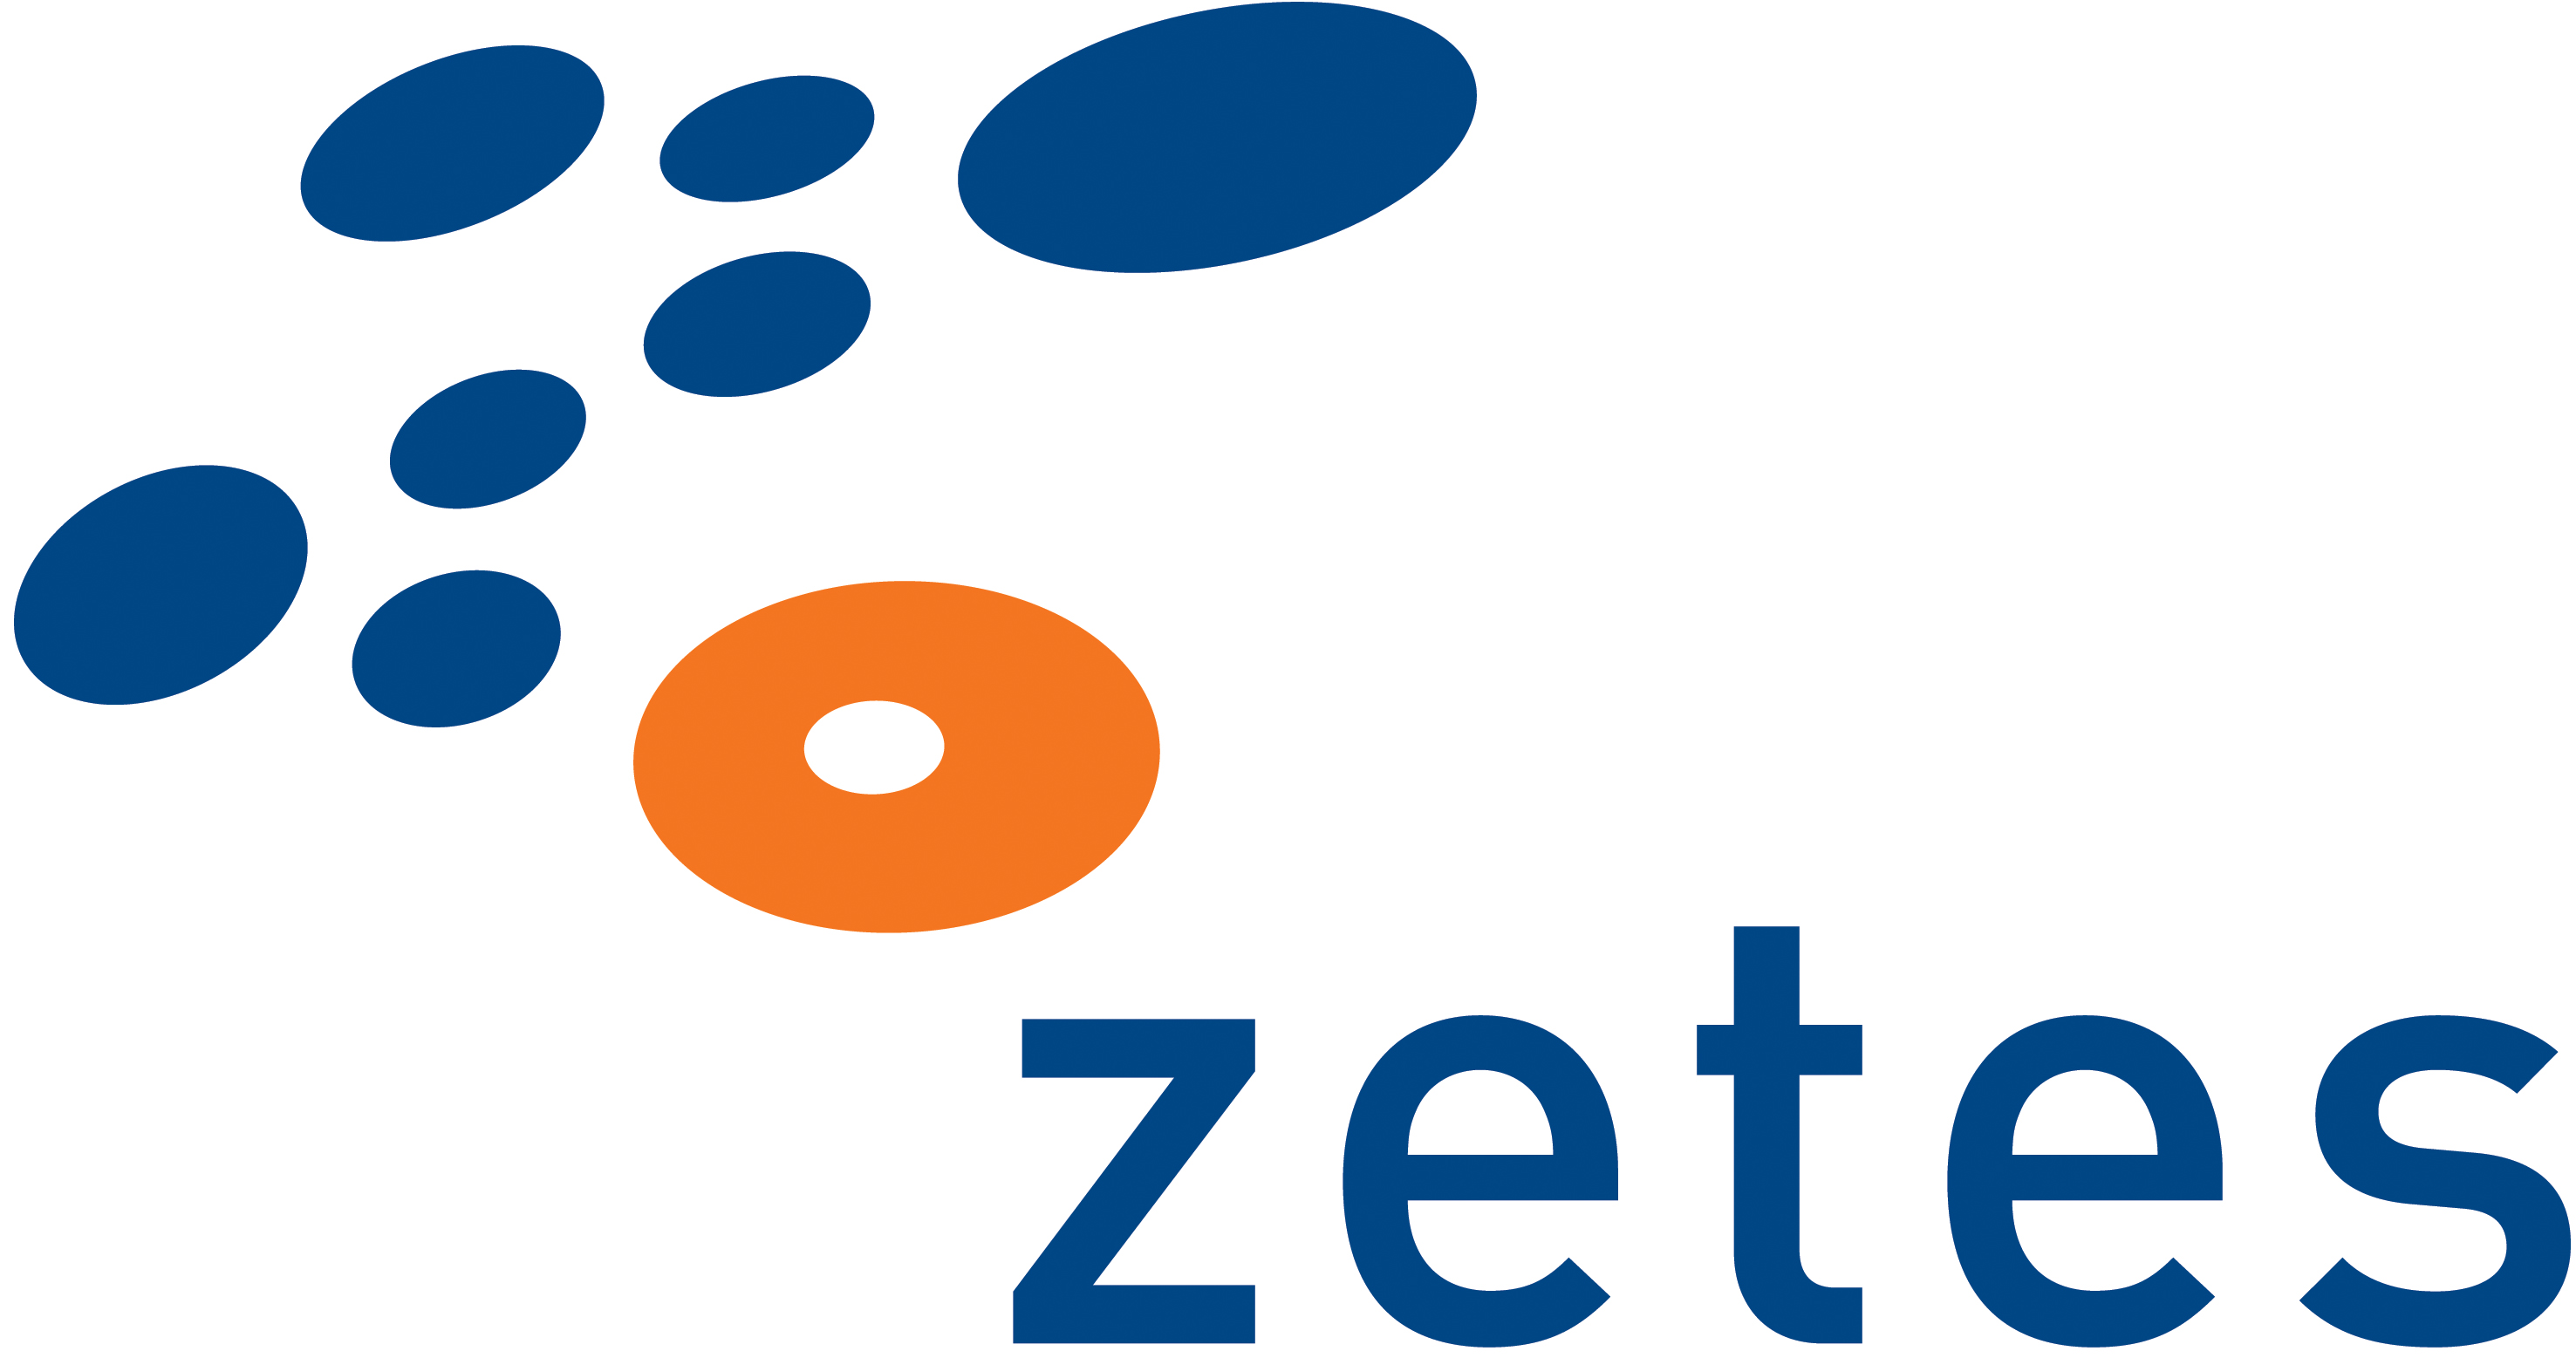 Zetes logo high res.jpg